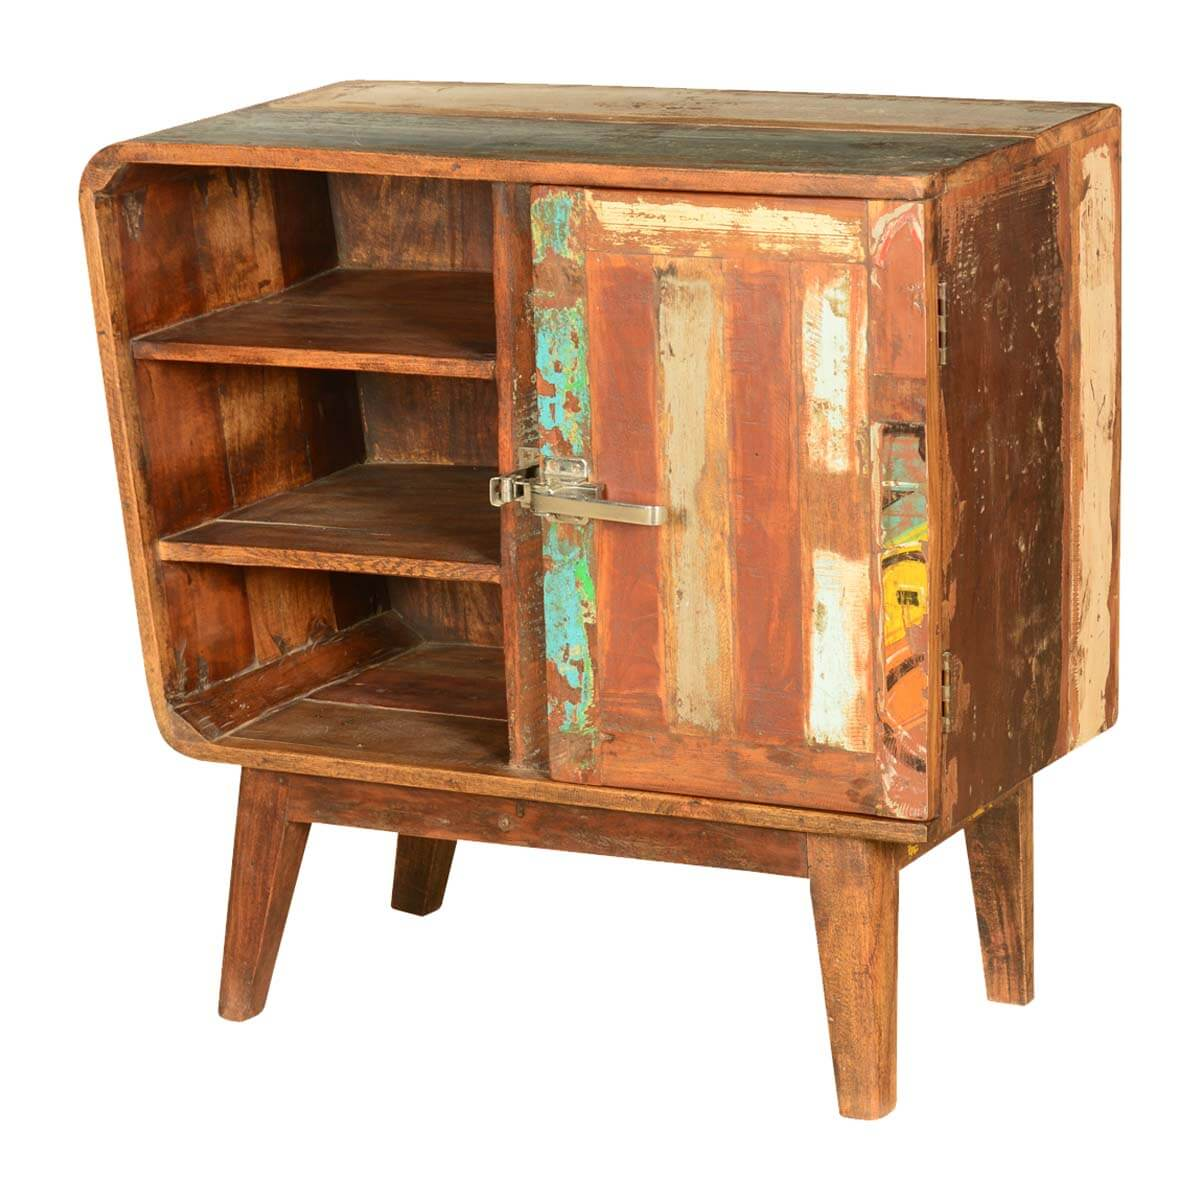 Strange Destin Rustic Reclaimed Wood Open Shelf Freestanding Cabinet Home Interior And Landscaping Synyenasavecom